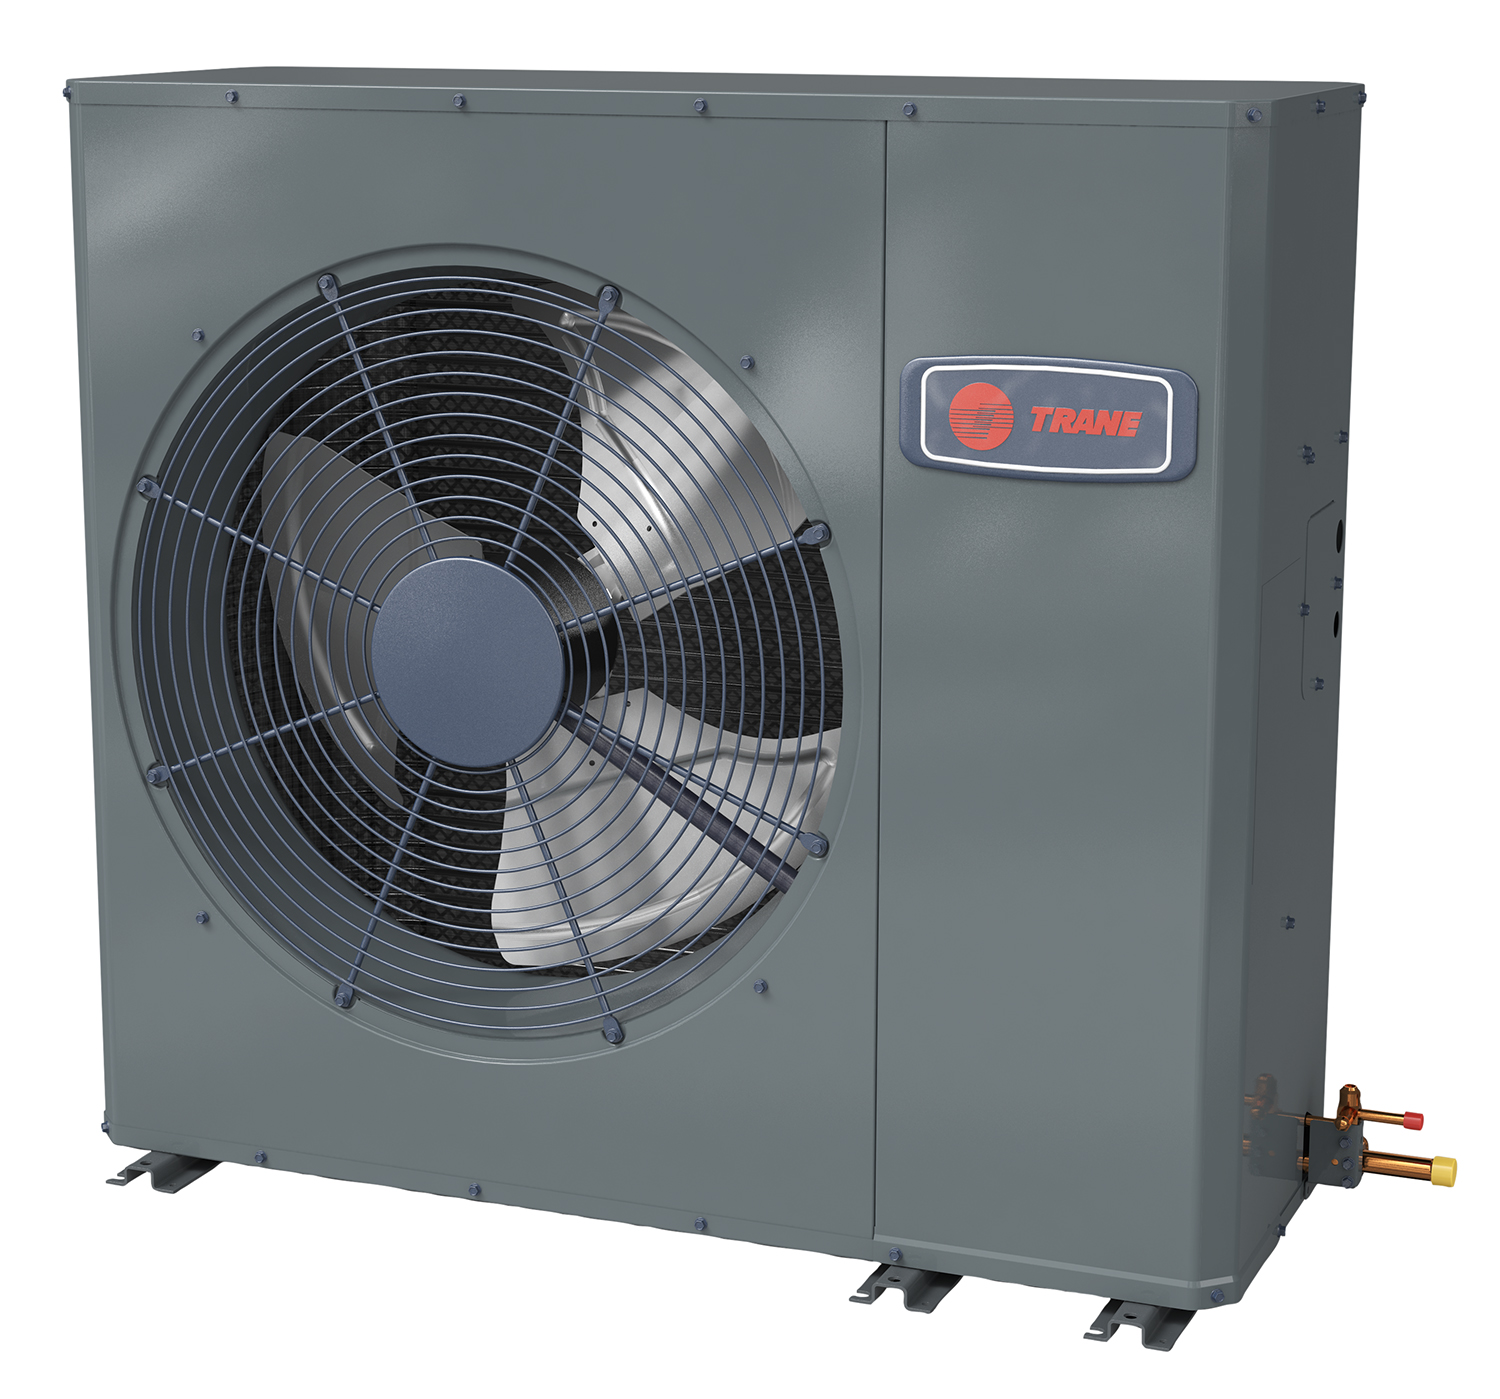 XR16 residential heat pump